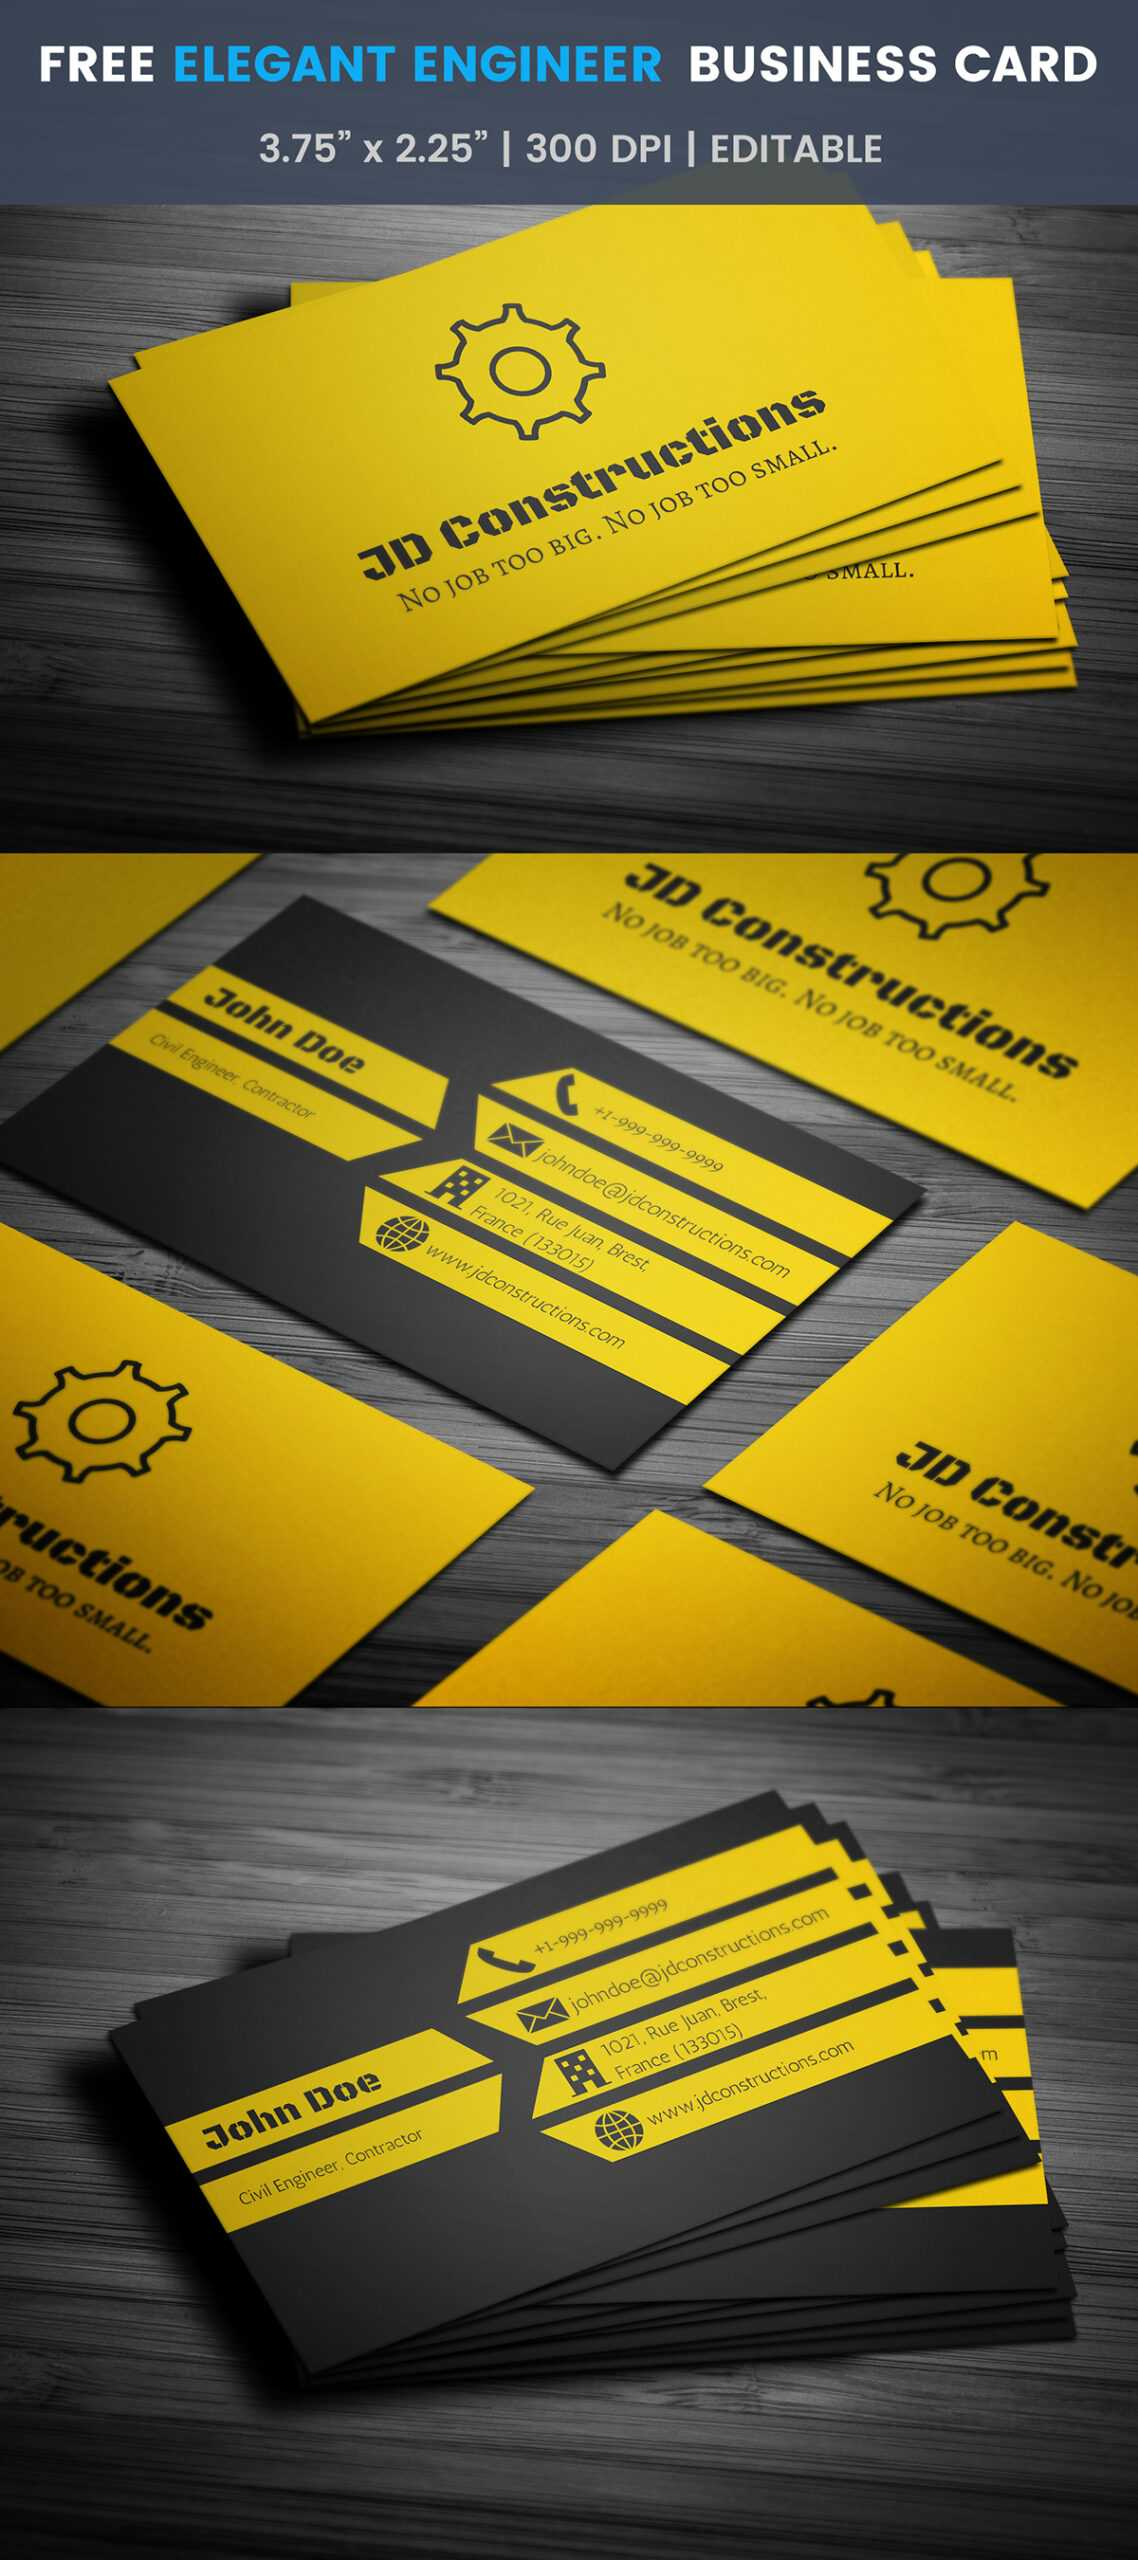 008 Template Ideas Construction Business Card Free On Within Construction Business Card Templates Download Free